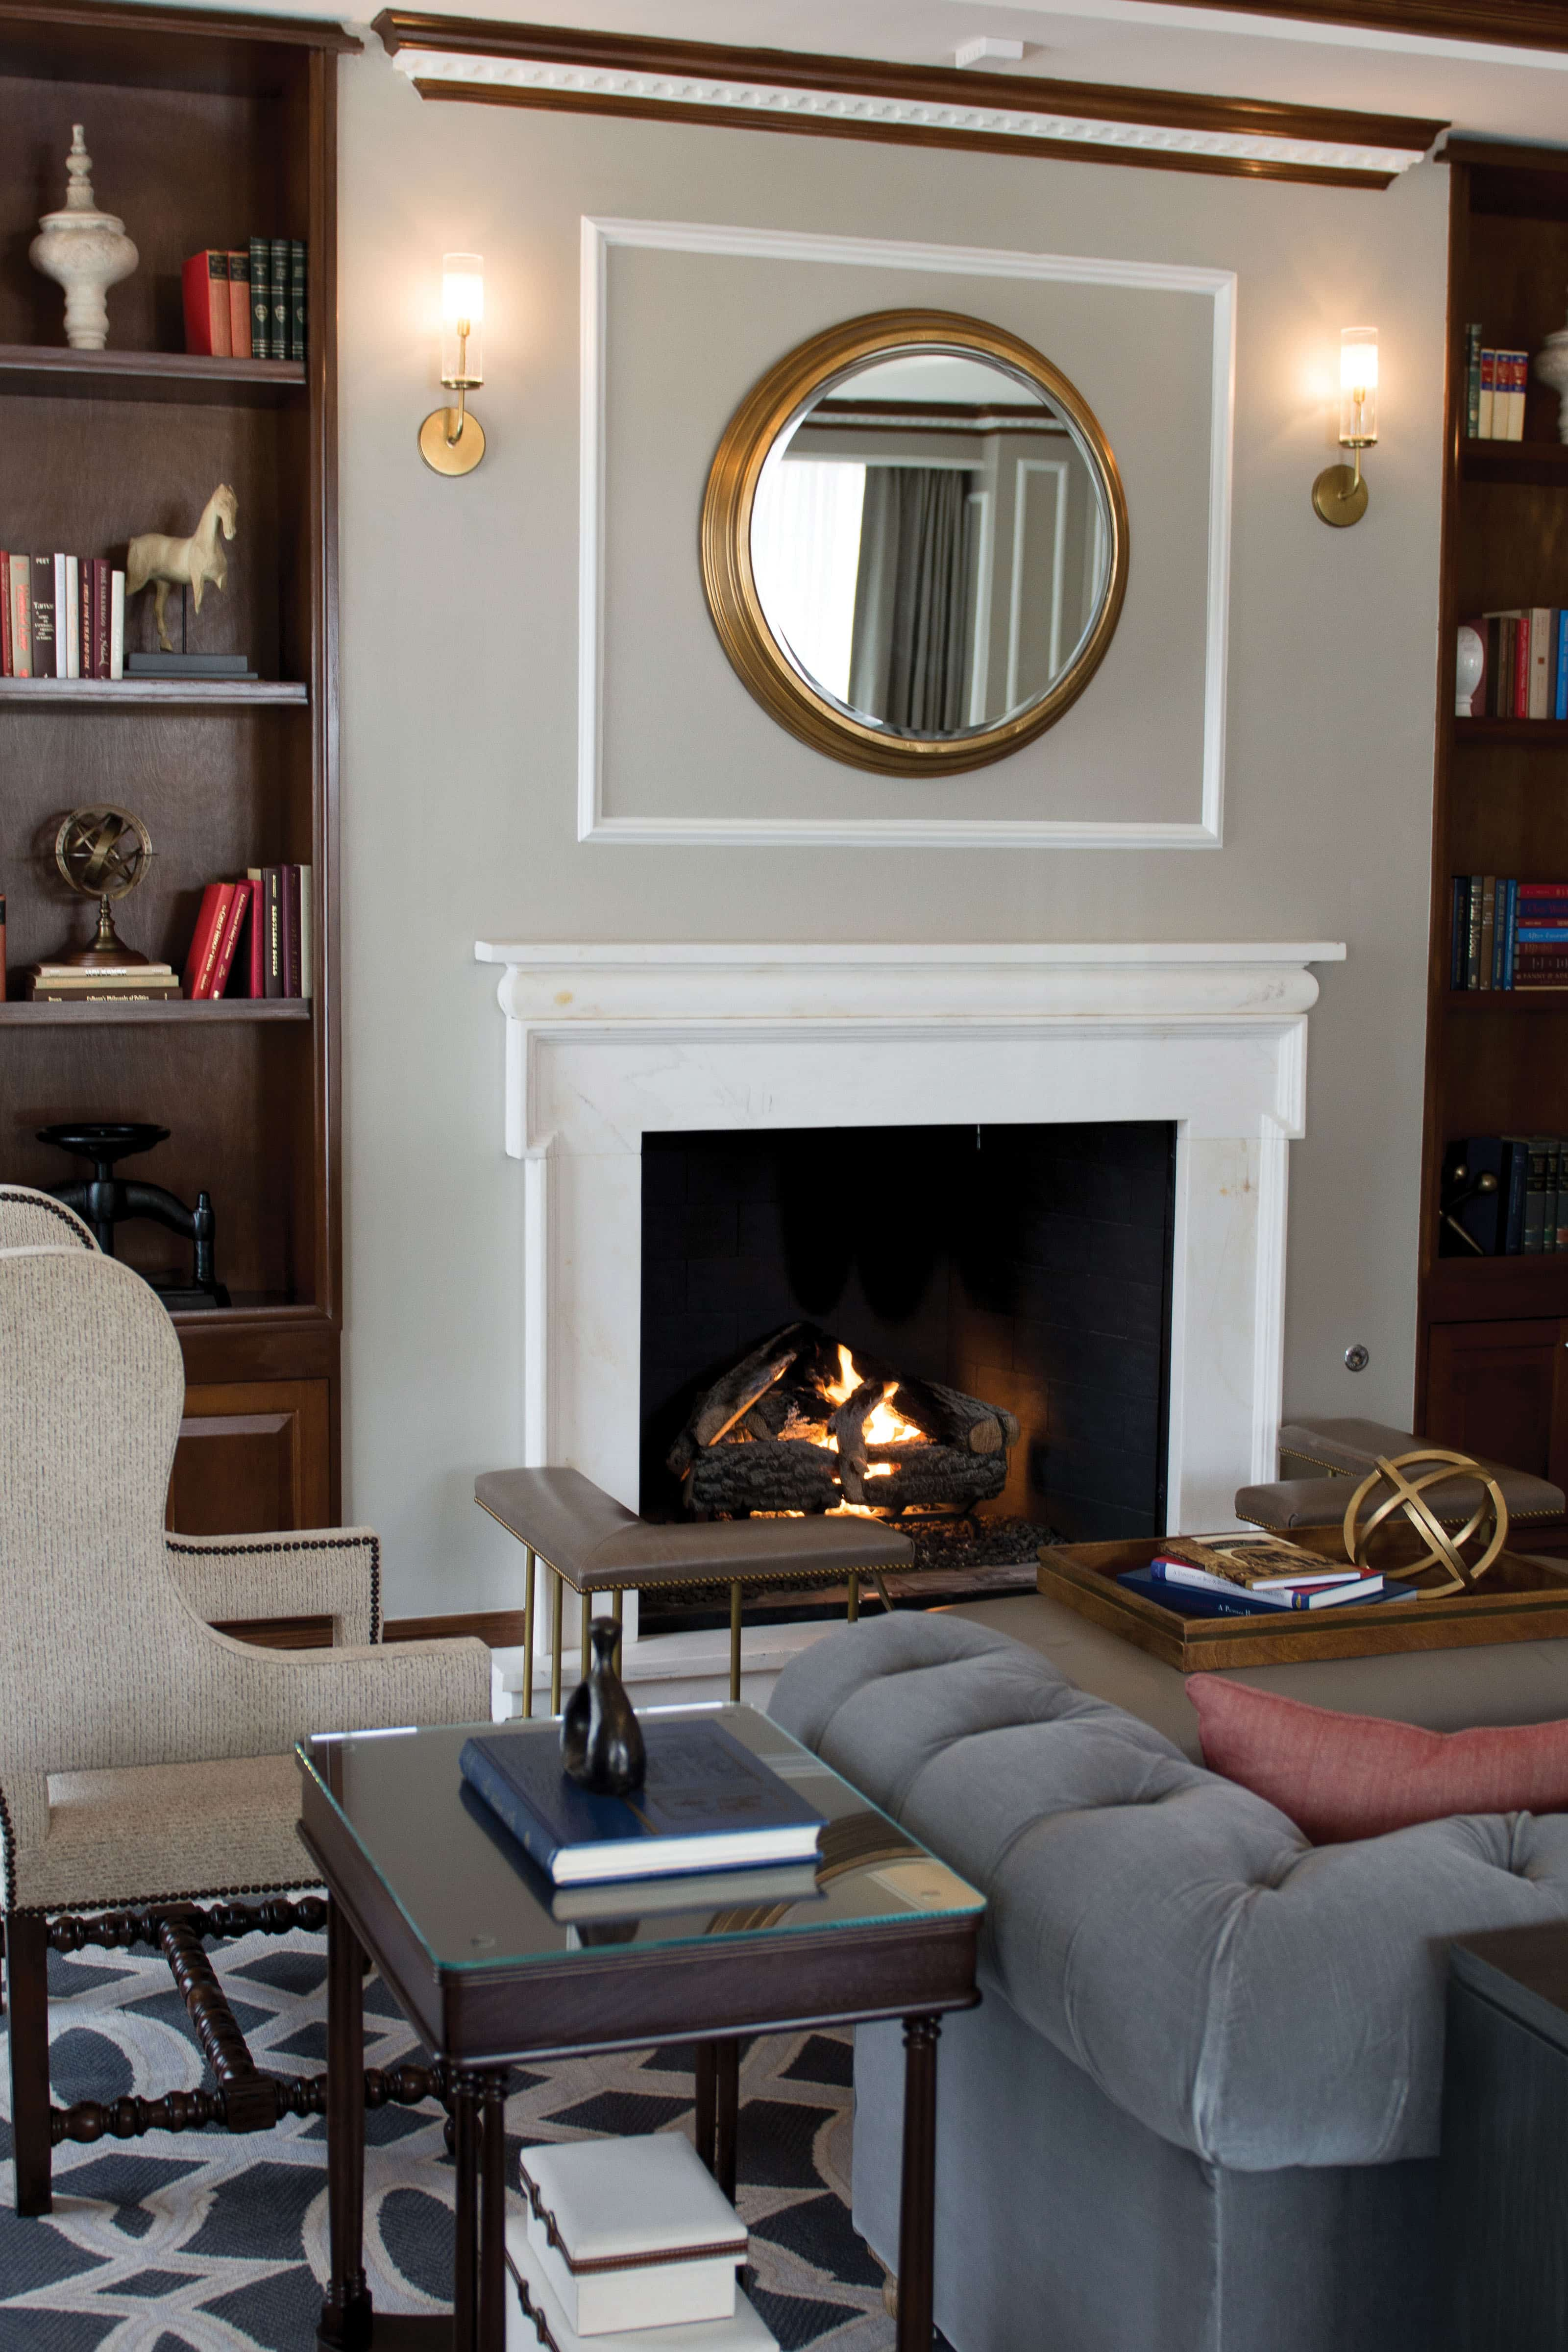 The study/lounge features a fireplace and bookshelves for guests to enjoy.